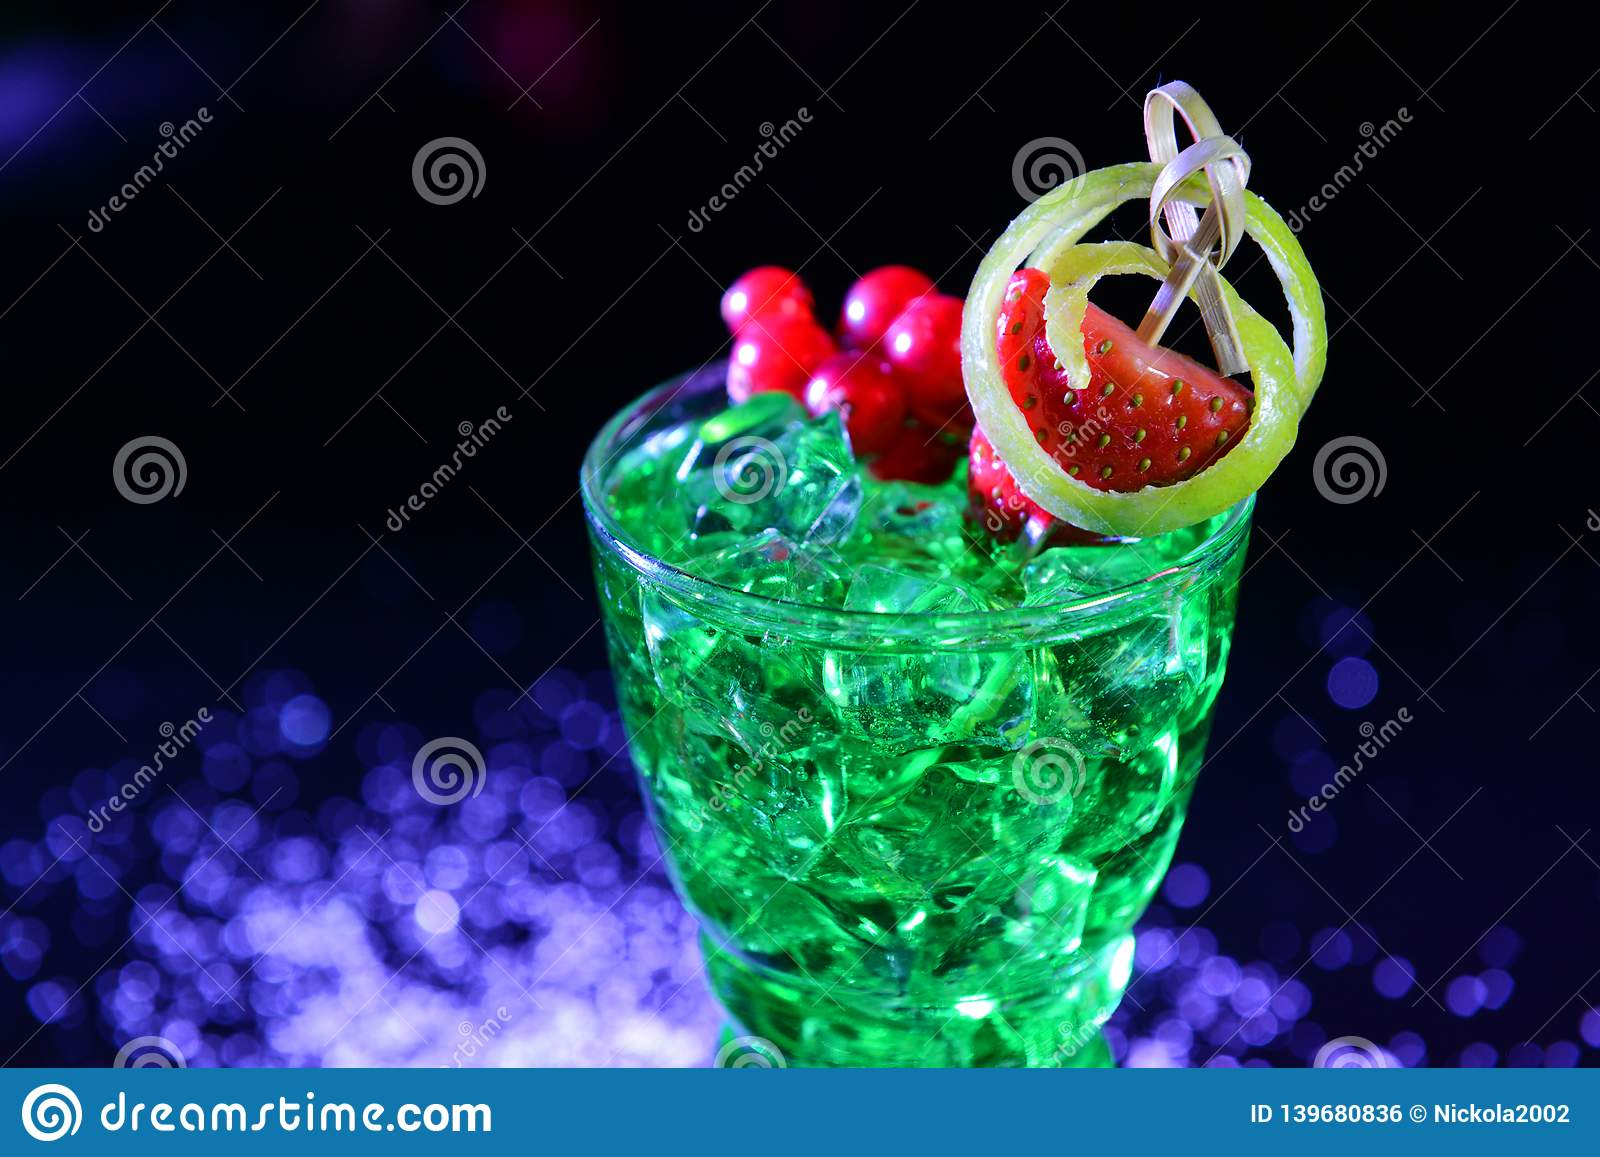 Mint green juice with strawberries and currants